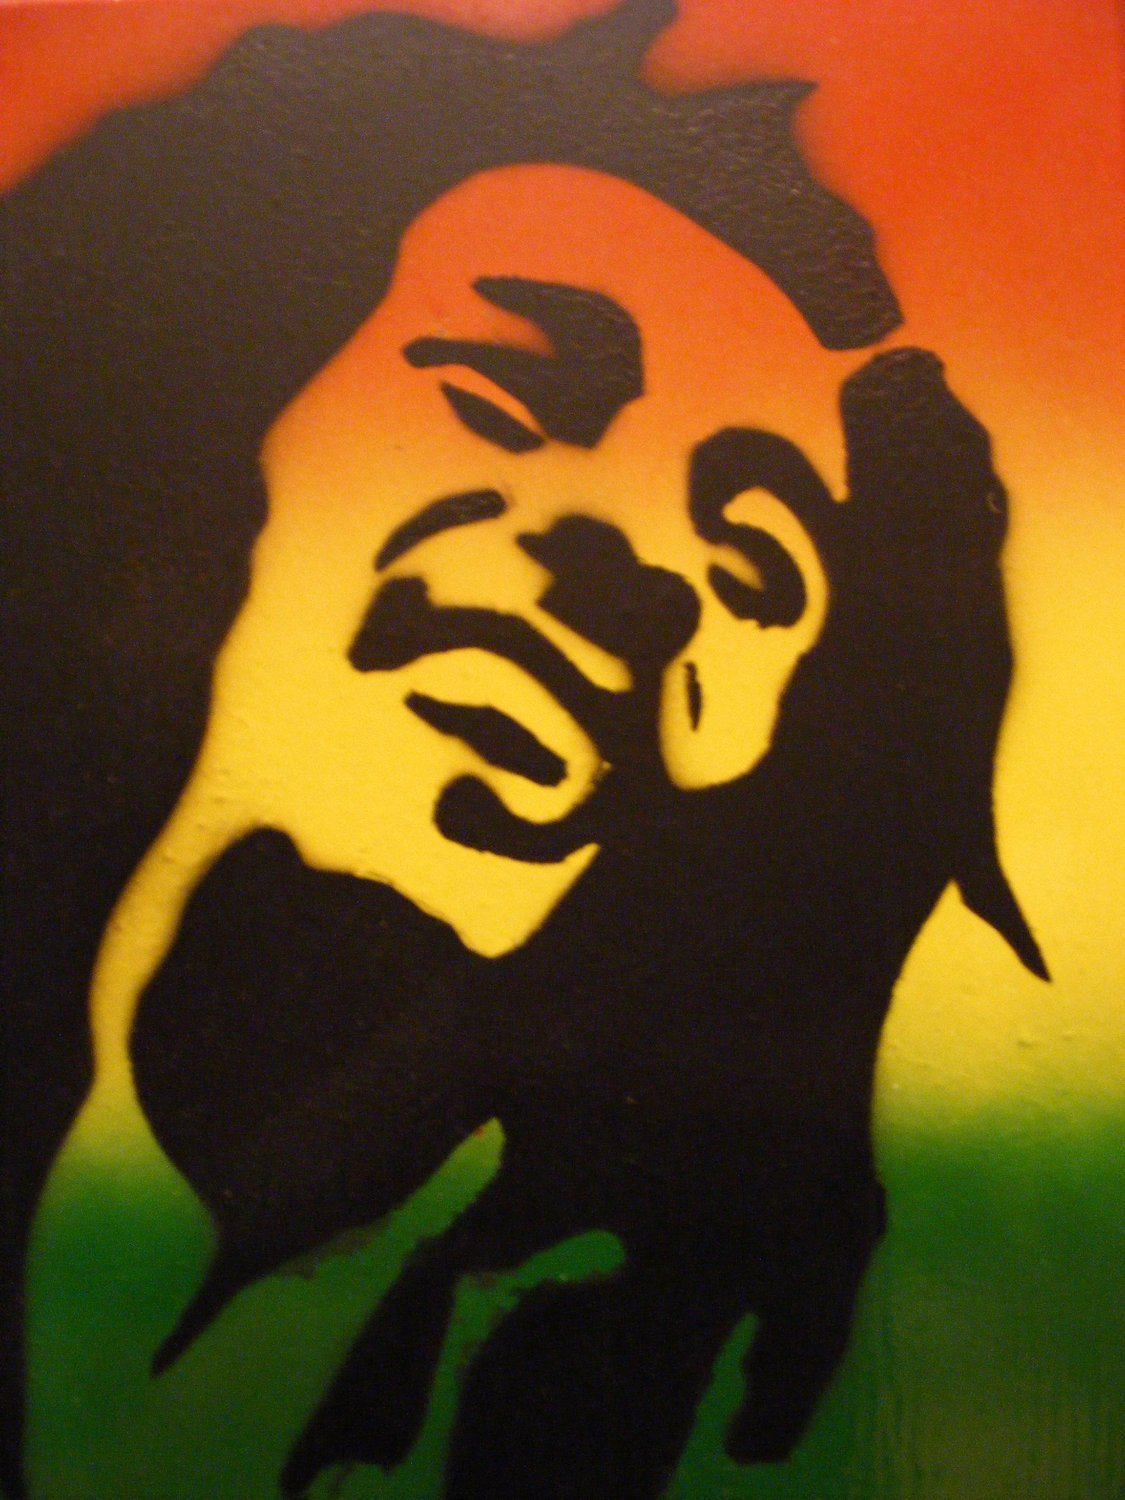 Spray Paint Art Stencils Awesome Spray Paint Stencil Art On Wood Bob Marley